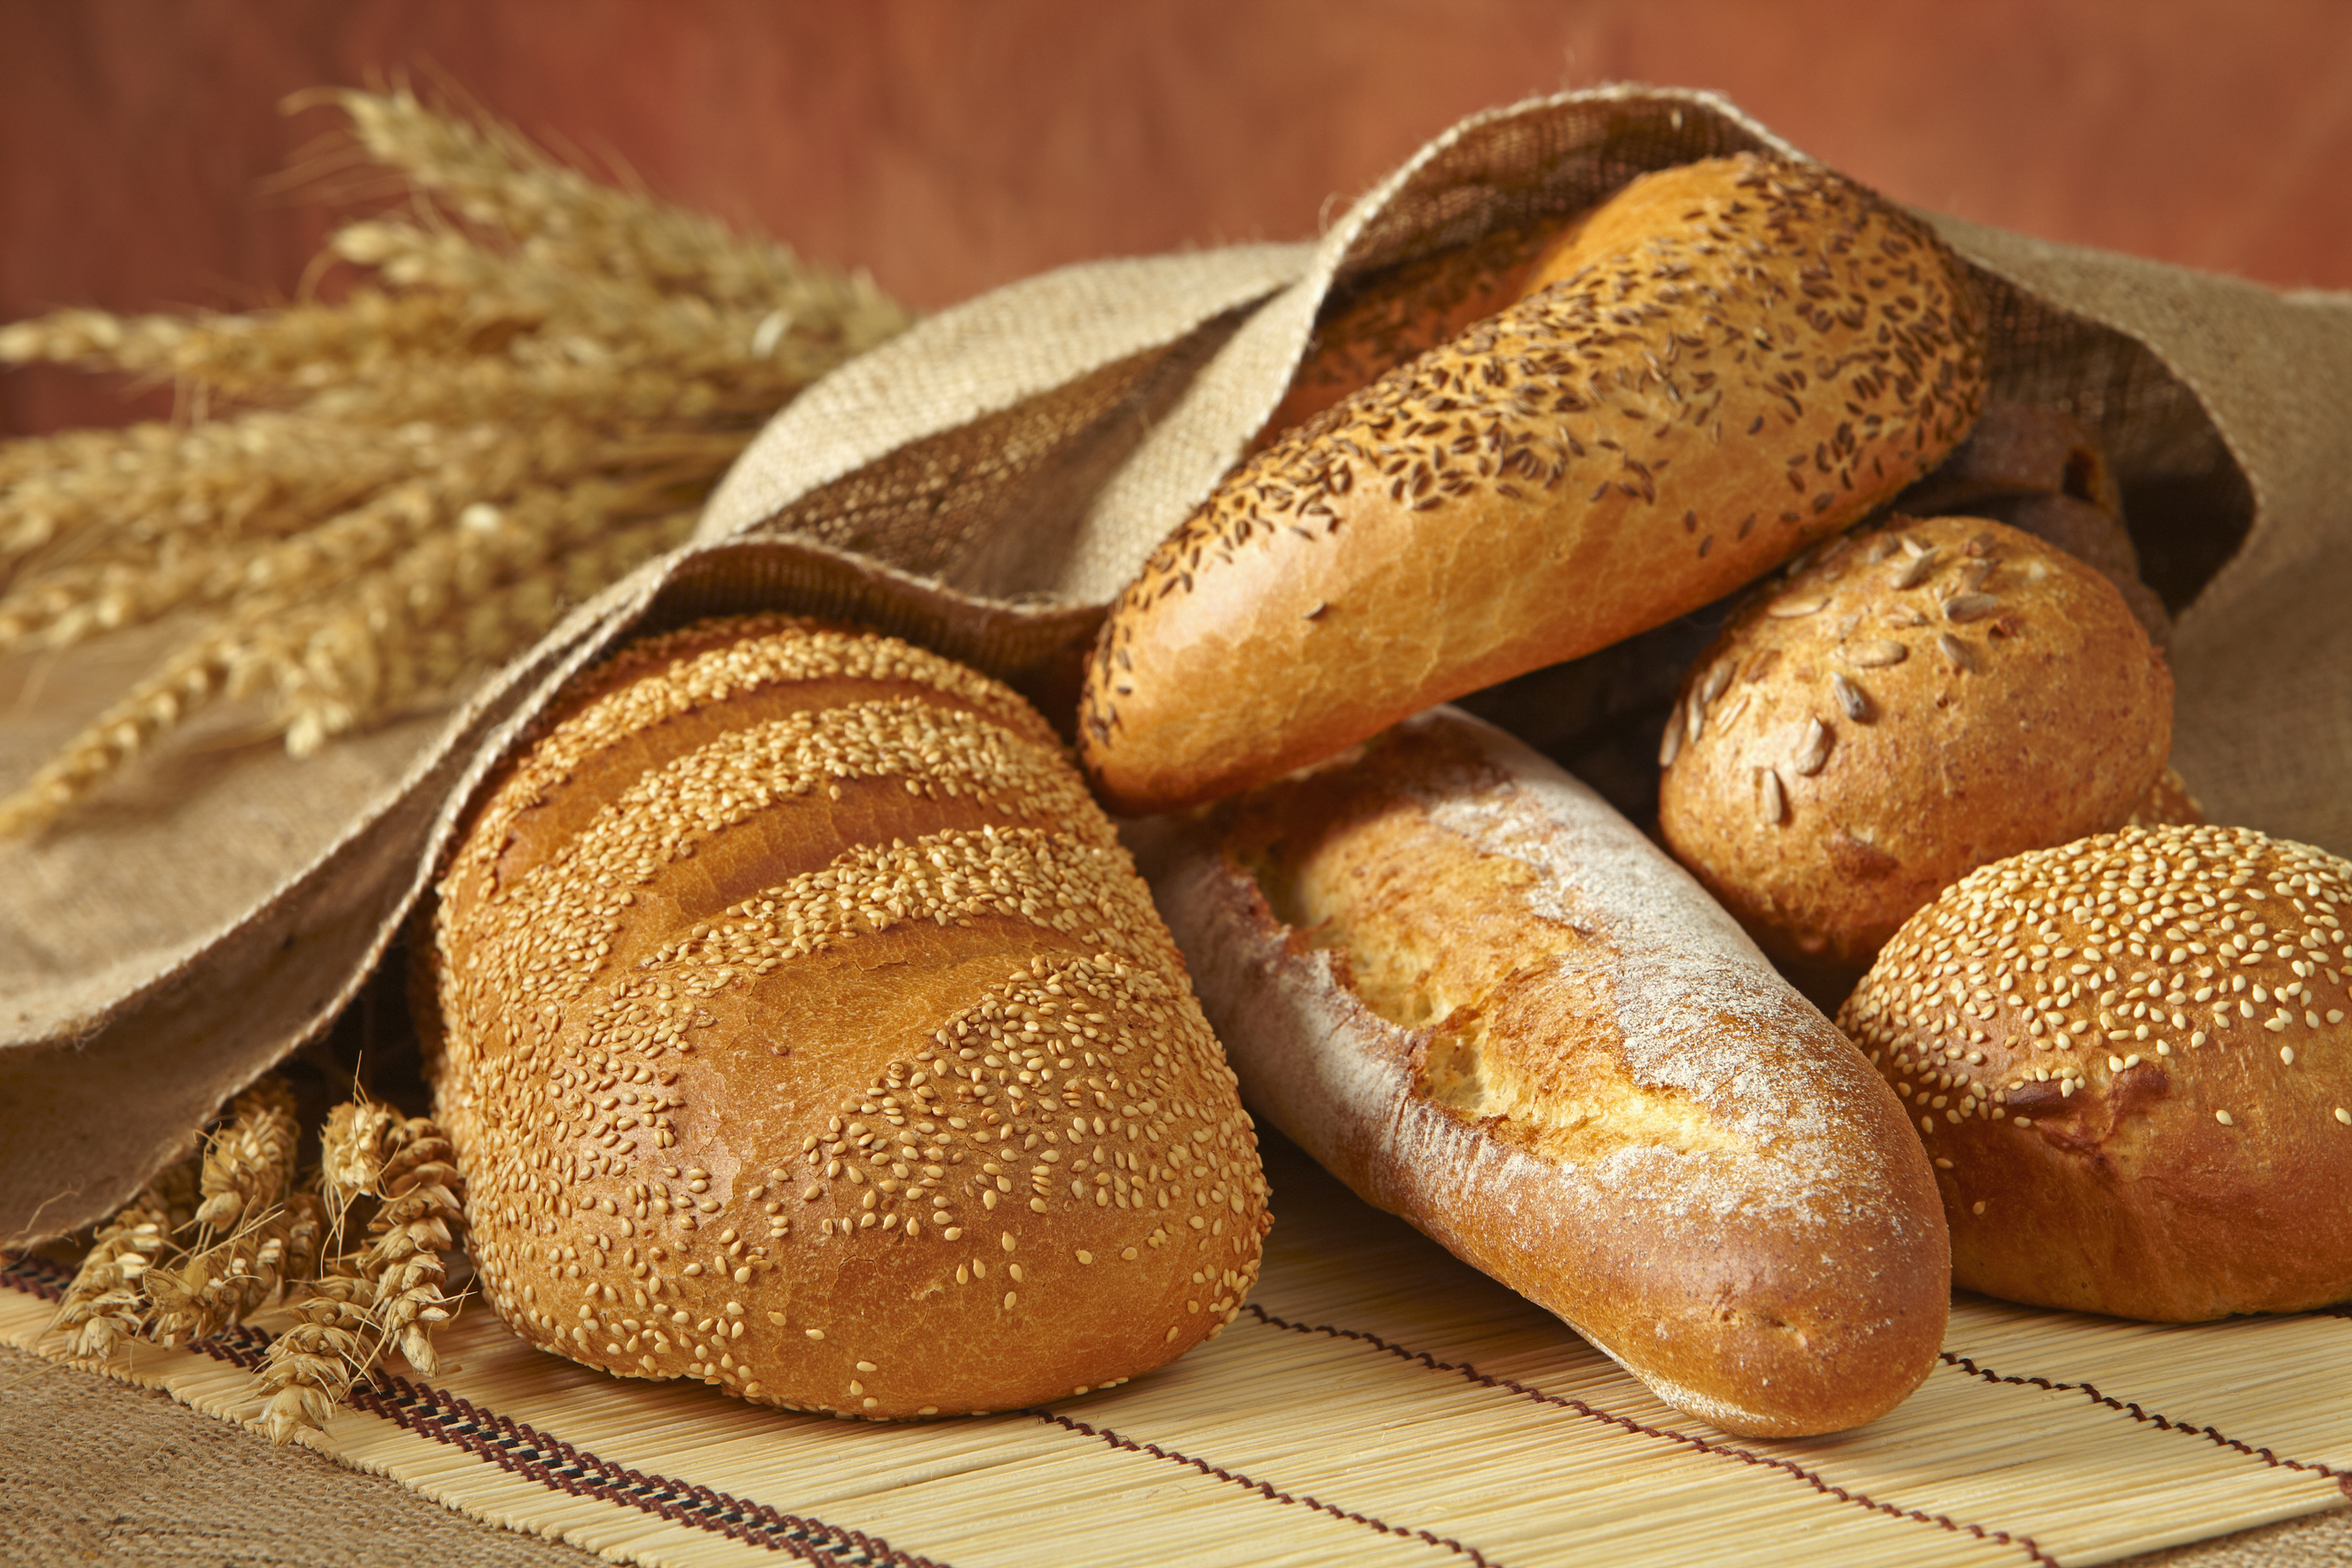 The Half-Baked Bread Story!